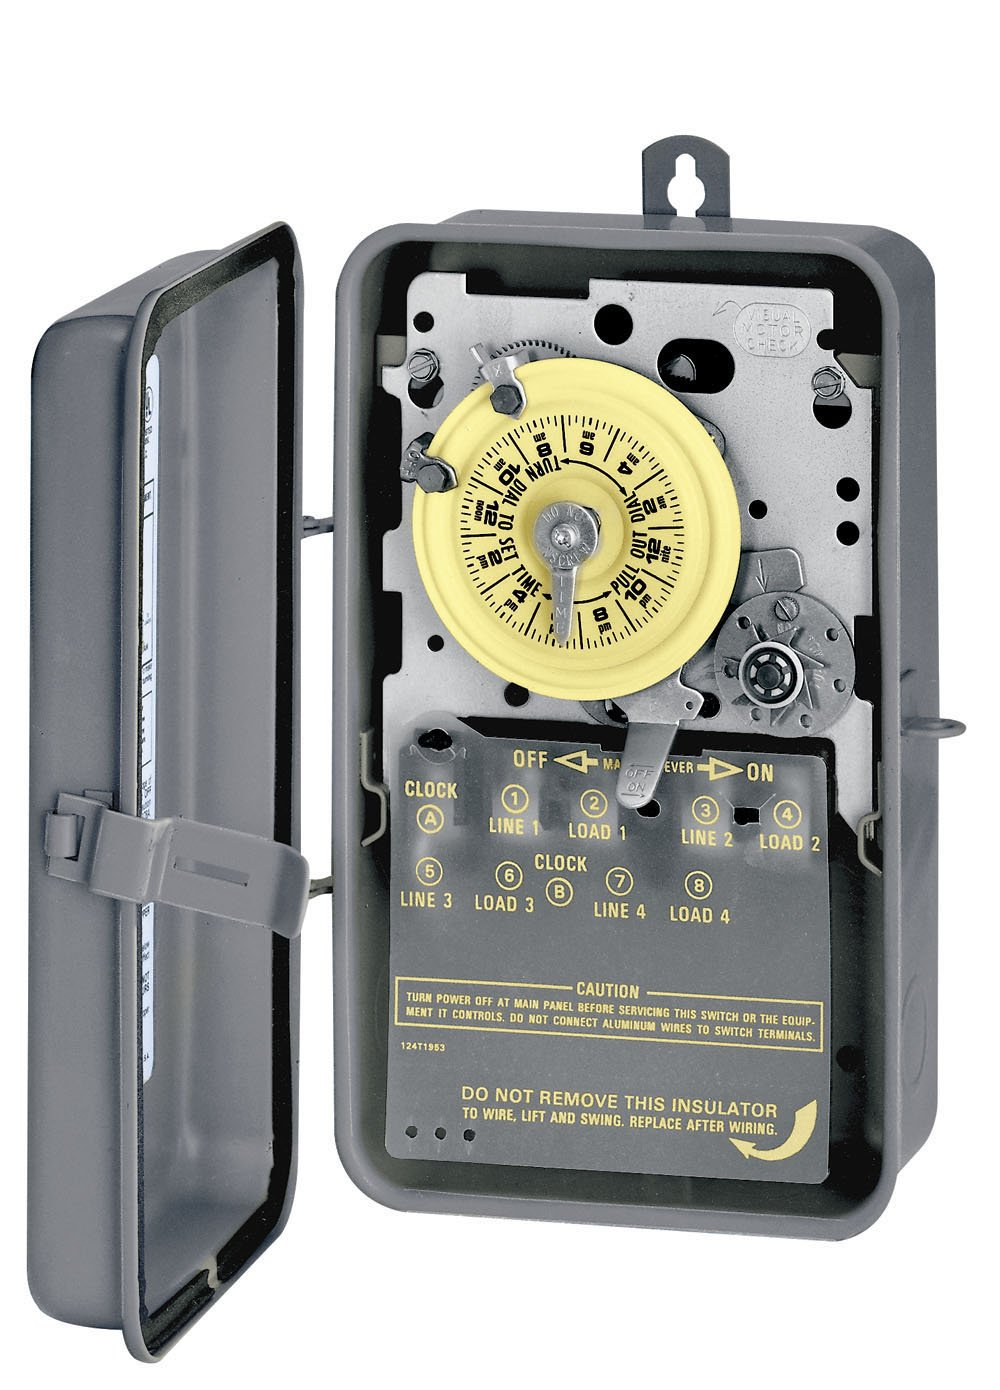 Intermatic T1871BR 24 Hour 125-Volt Time Switch with 3R Steel Enclosure